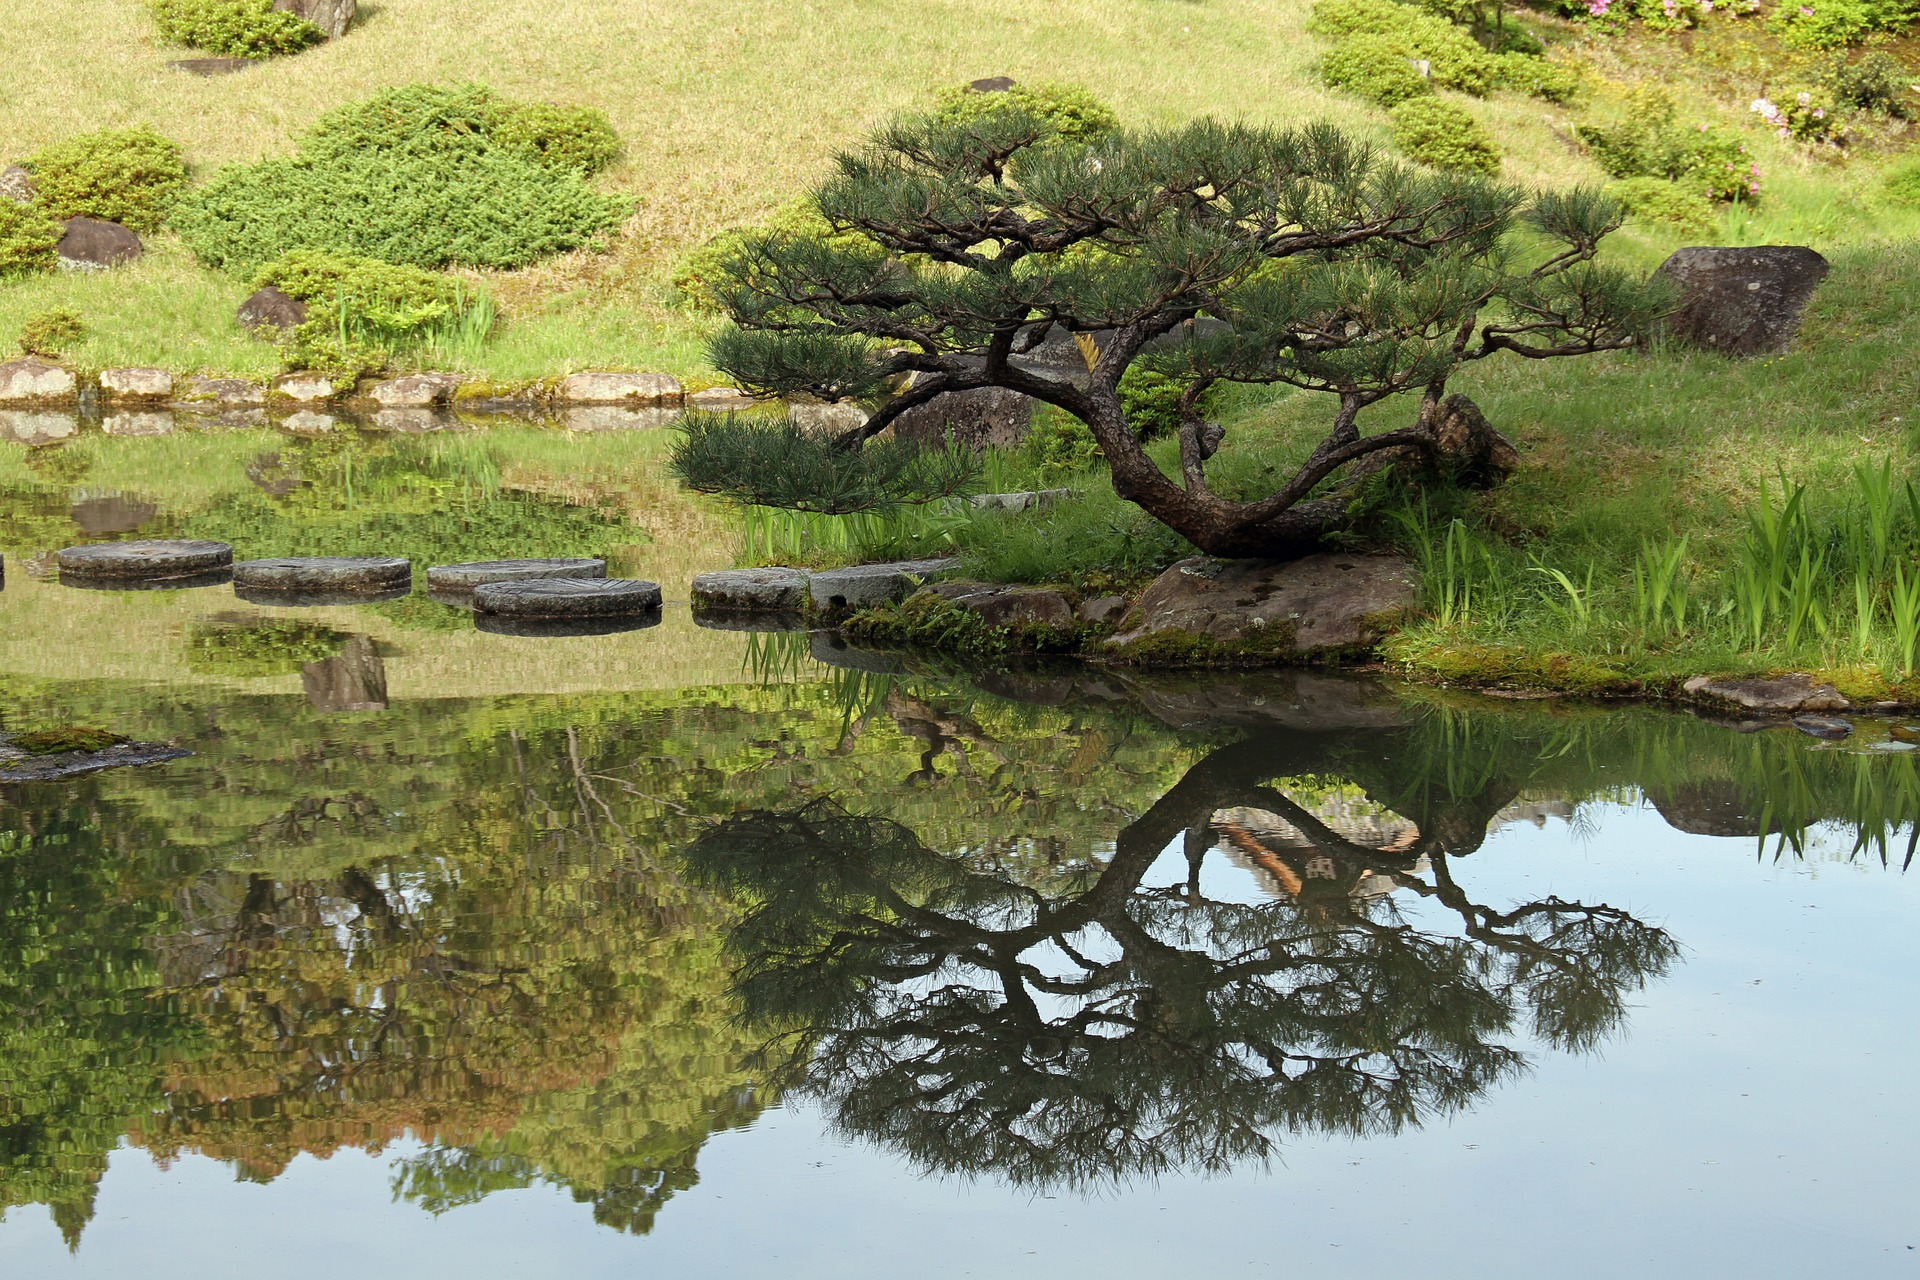 A bonsai tree beside the pond.